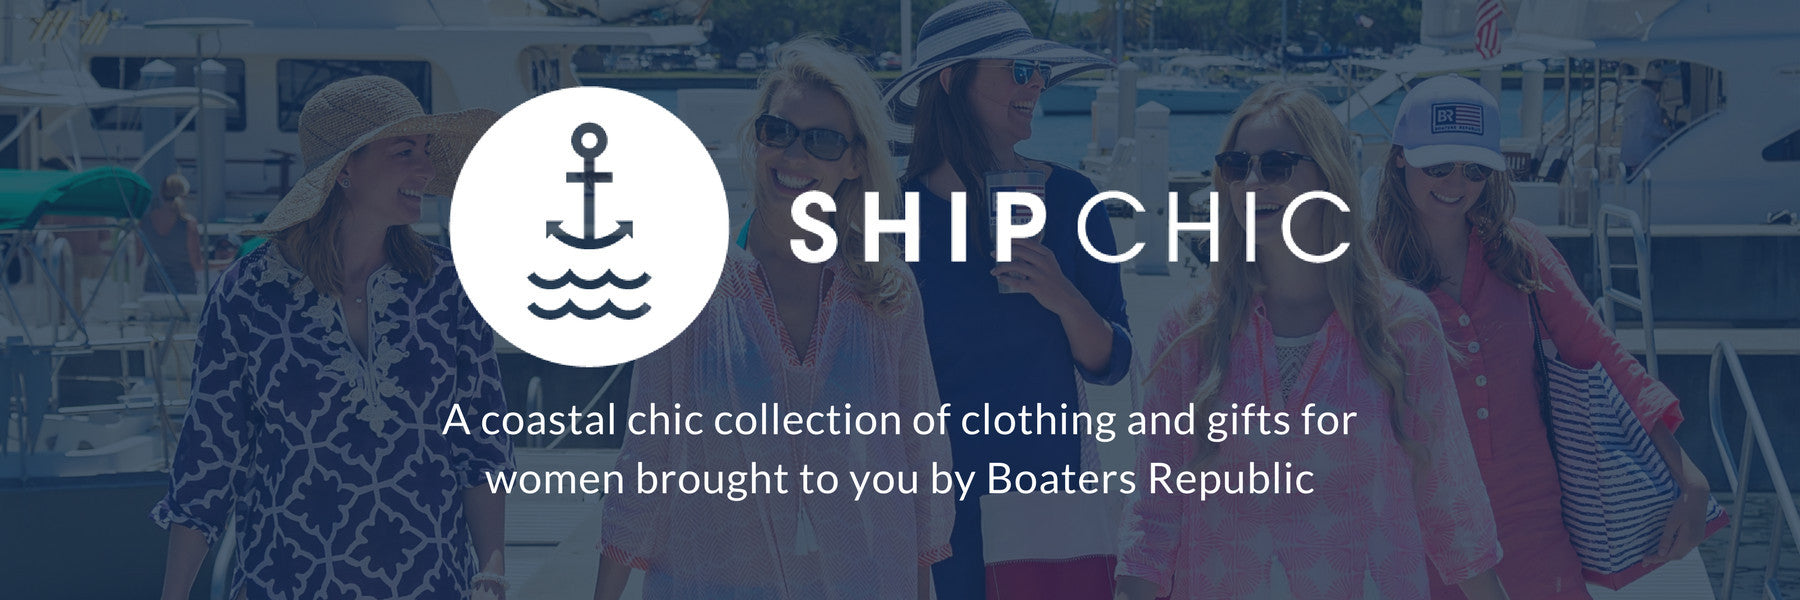 Ship Chic: A coastal chic collection of clothing and gifts for women brought to you by Boaters Republic